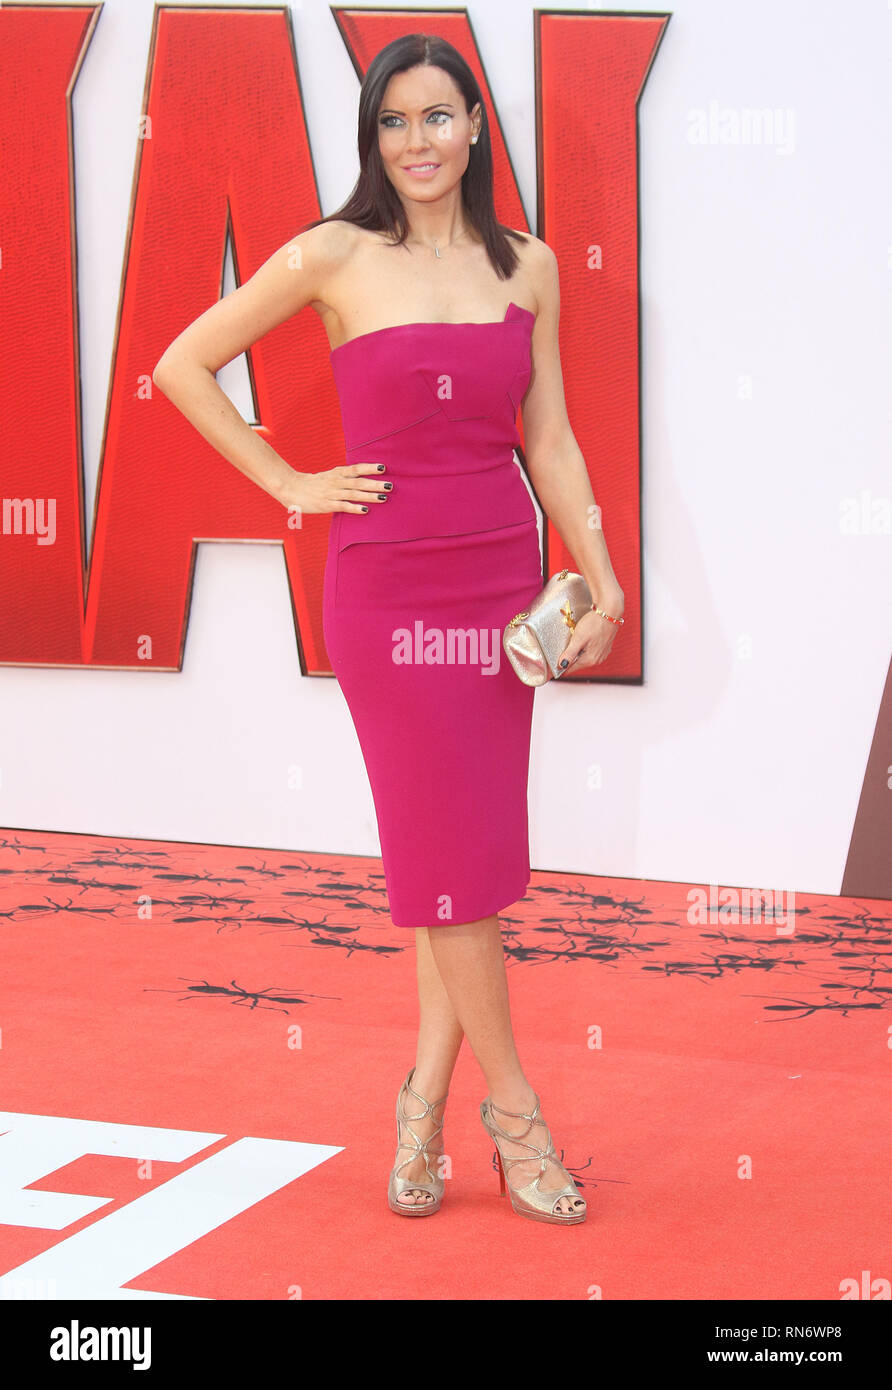 Jul 08, 2015 - London, England, UK - Ant-Man European Premiere, Odeon Leicester Square - Red Carpet Arrivals Photo Shows: Linzi Stoppard - Stock Image